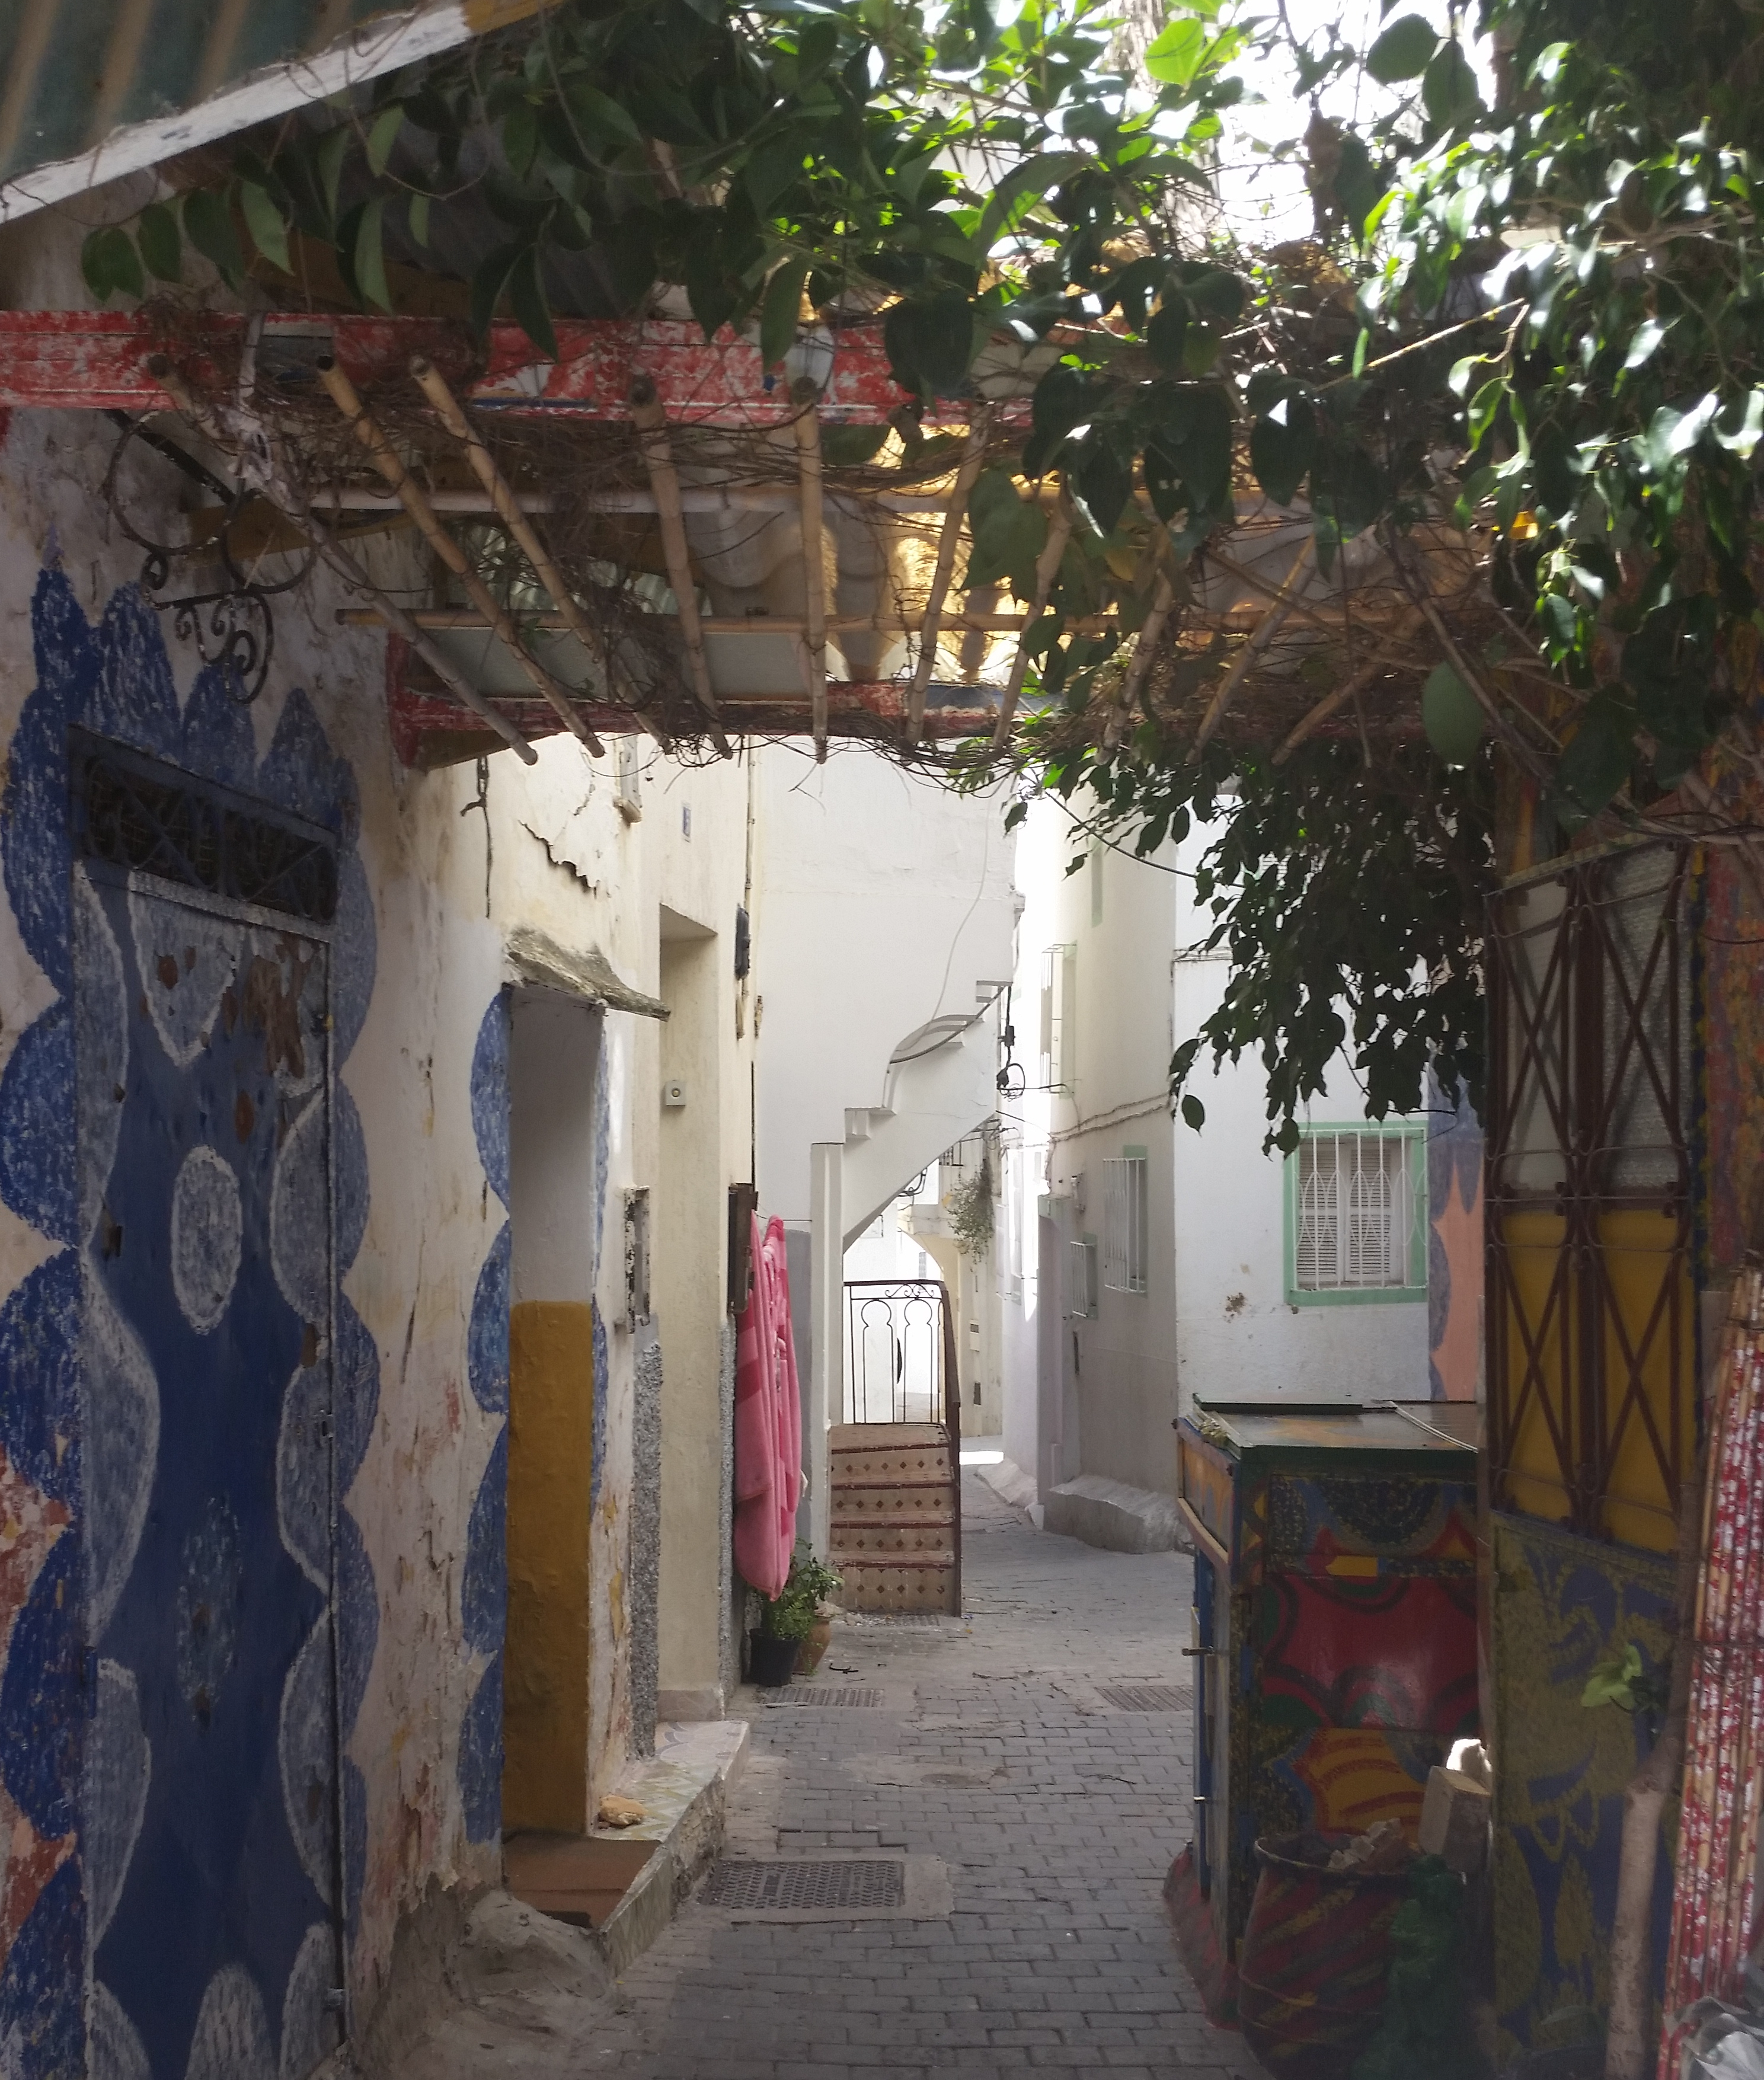 A colourful alley in Tanger, Morocco